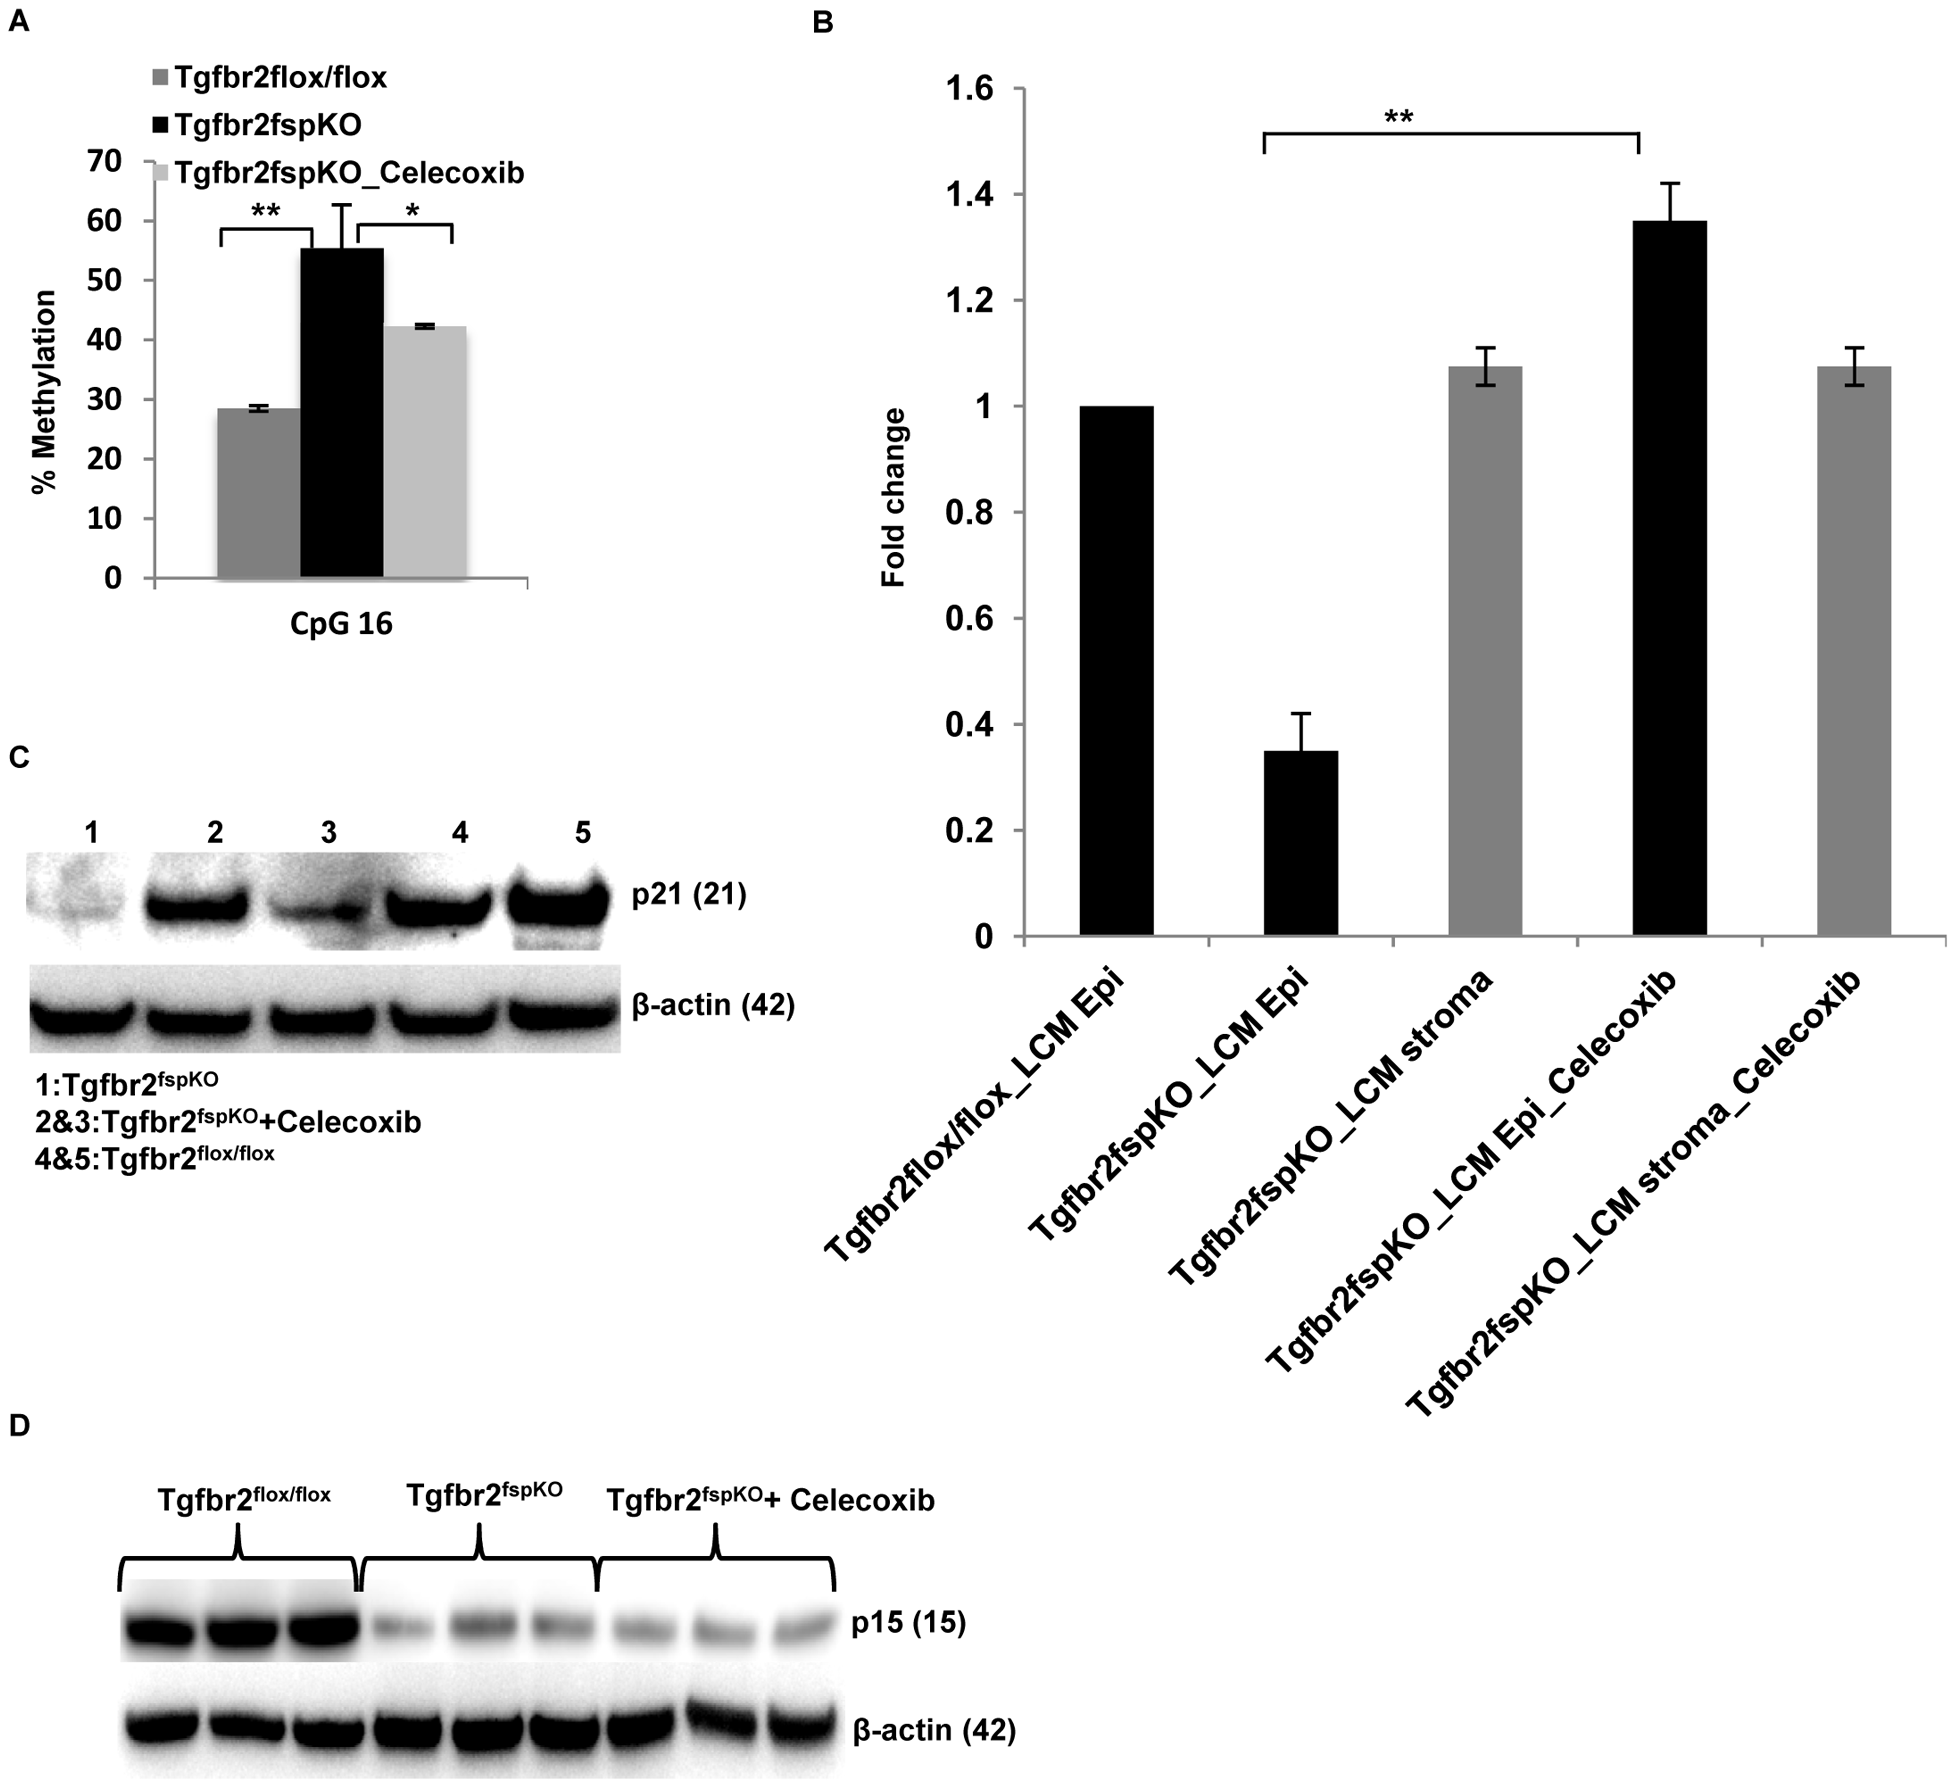 Anti-inflammation decreases promoter methylation and restores <i>p21</i> expression.